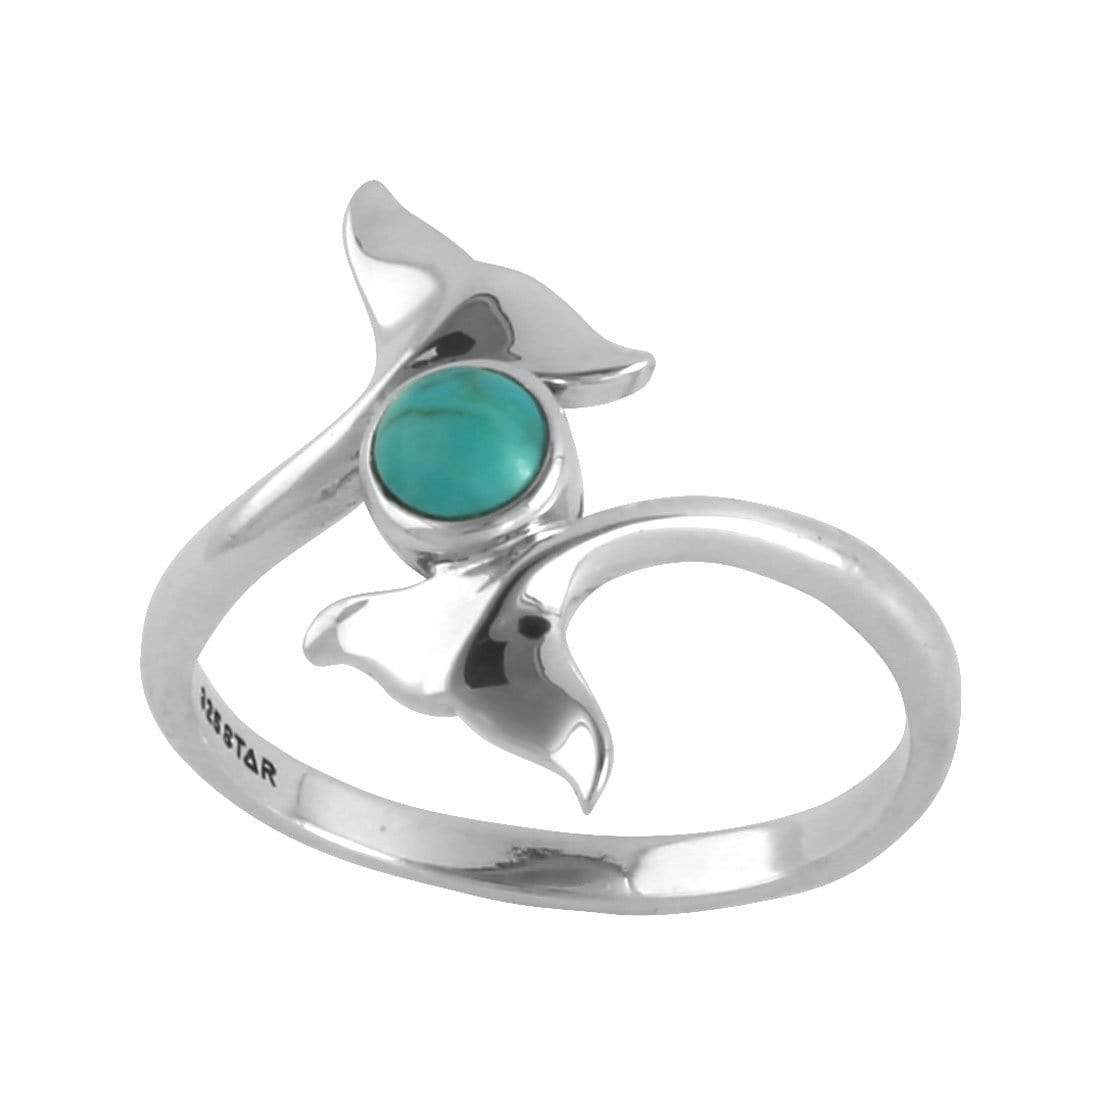 Midsummer Star Ring Dolphin Tails Turquoise Ring